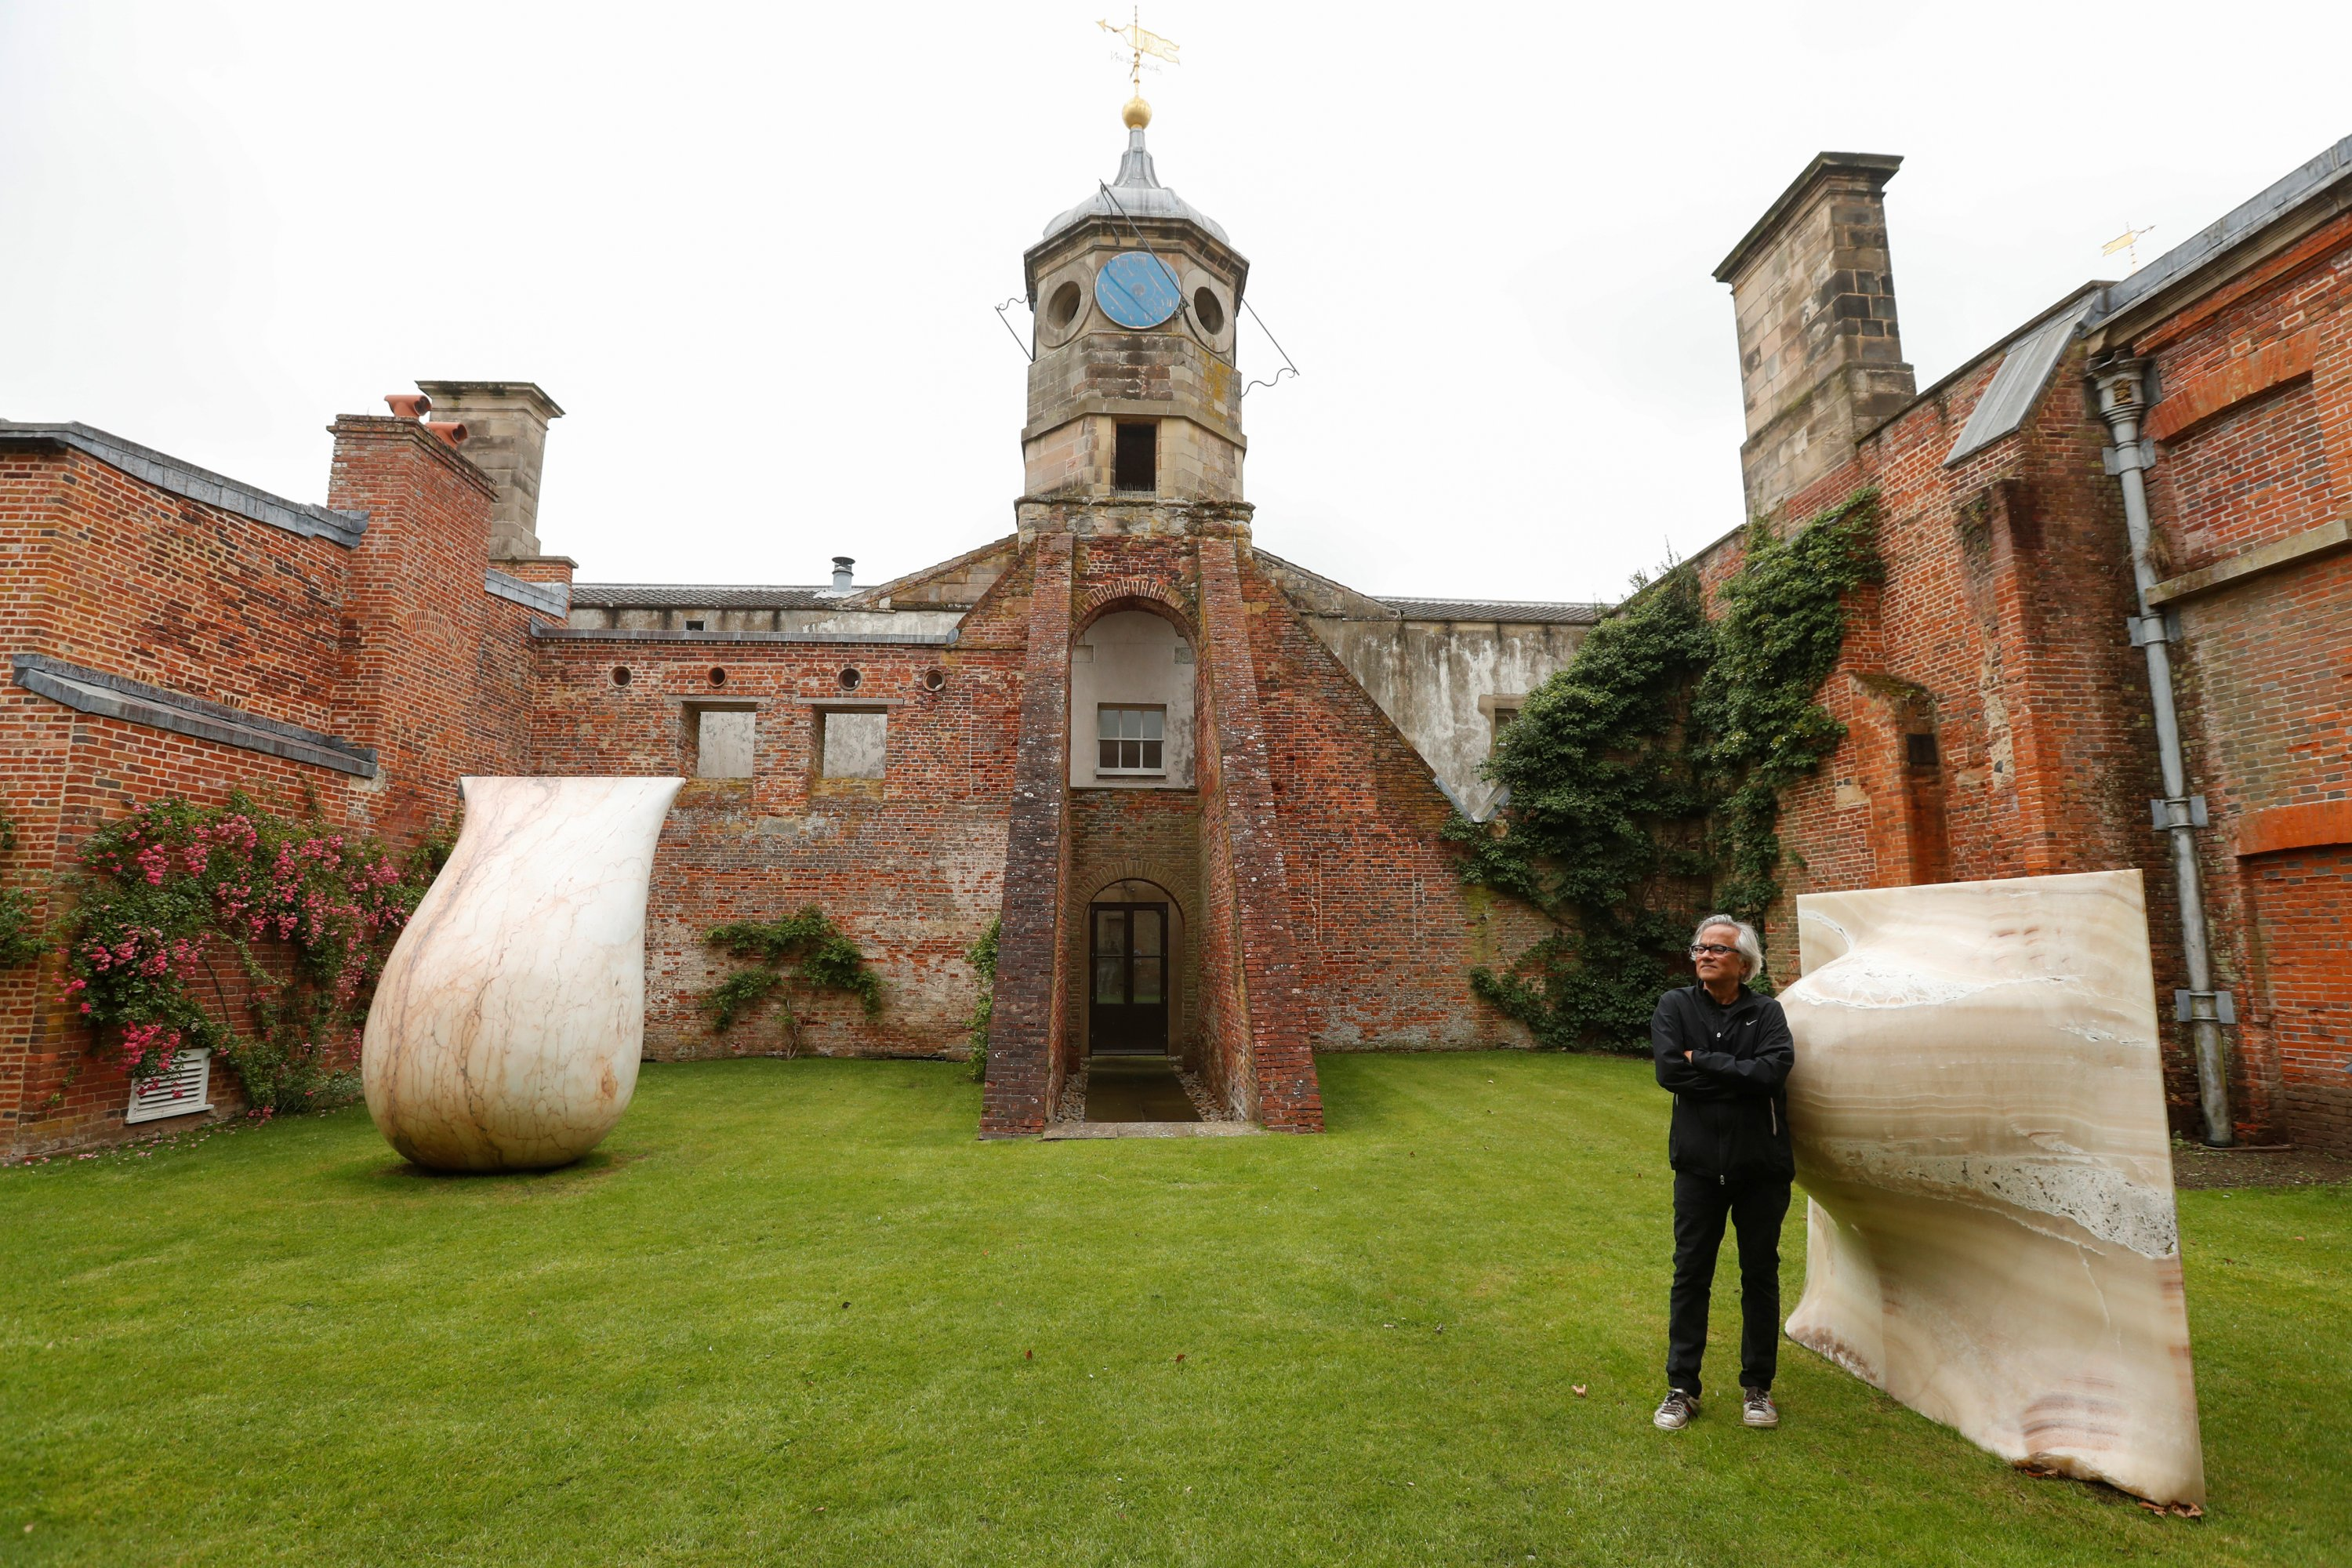 British-Indian artist Anish Kapoor poses with his sculptures in the gardens at Houghton Hall in Norfolk, Britain, July 9, 2020. (REUTERS PHOTO)